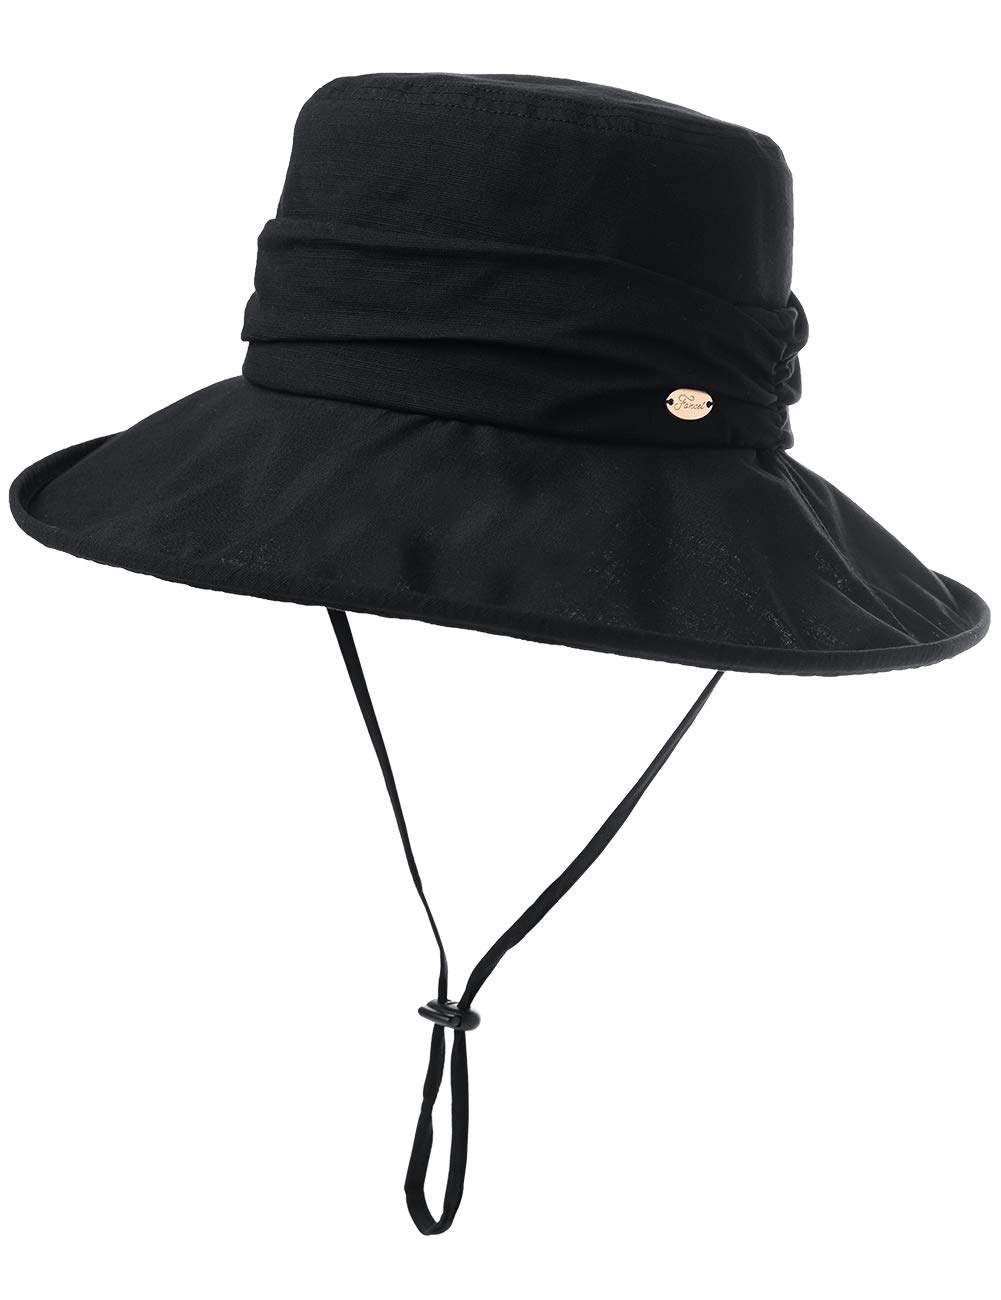 Comhats Fishing Summer Bucket Hat for Women Beach Cotton Foldable Packable Wide Brim Ladies Sunhat Outdoor Black